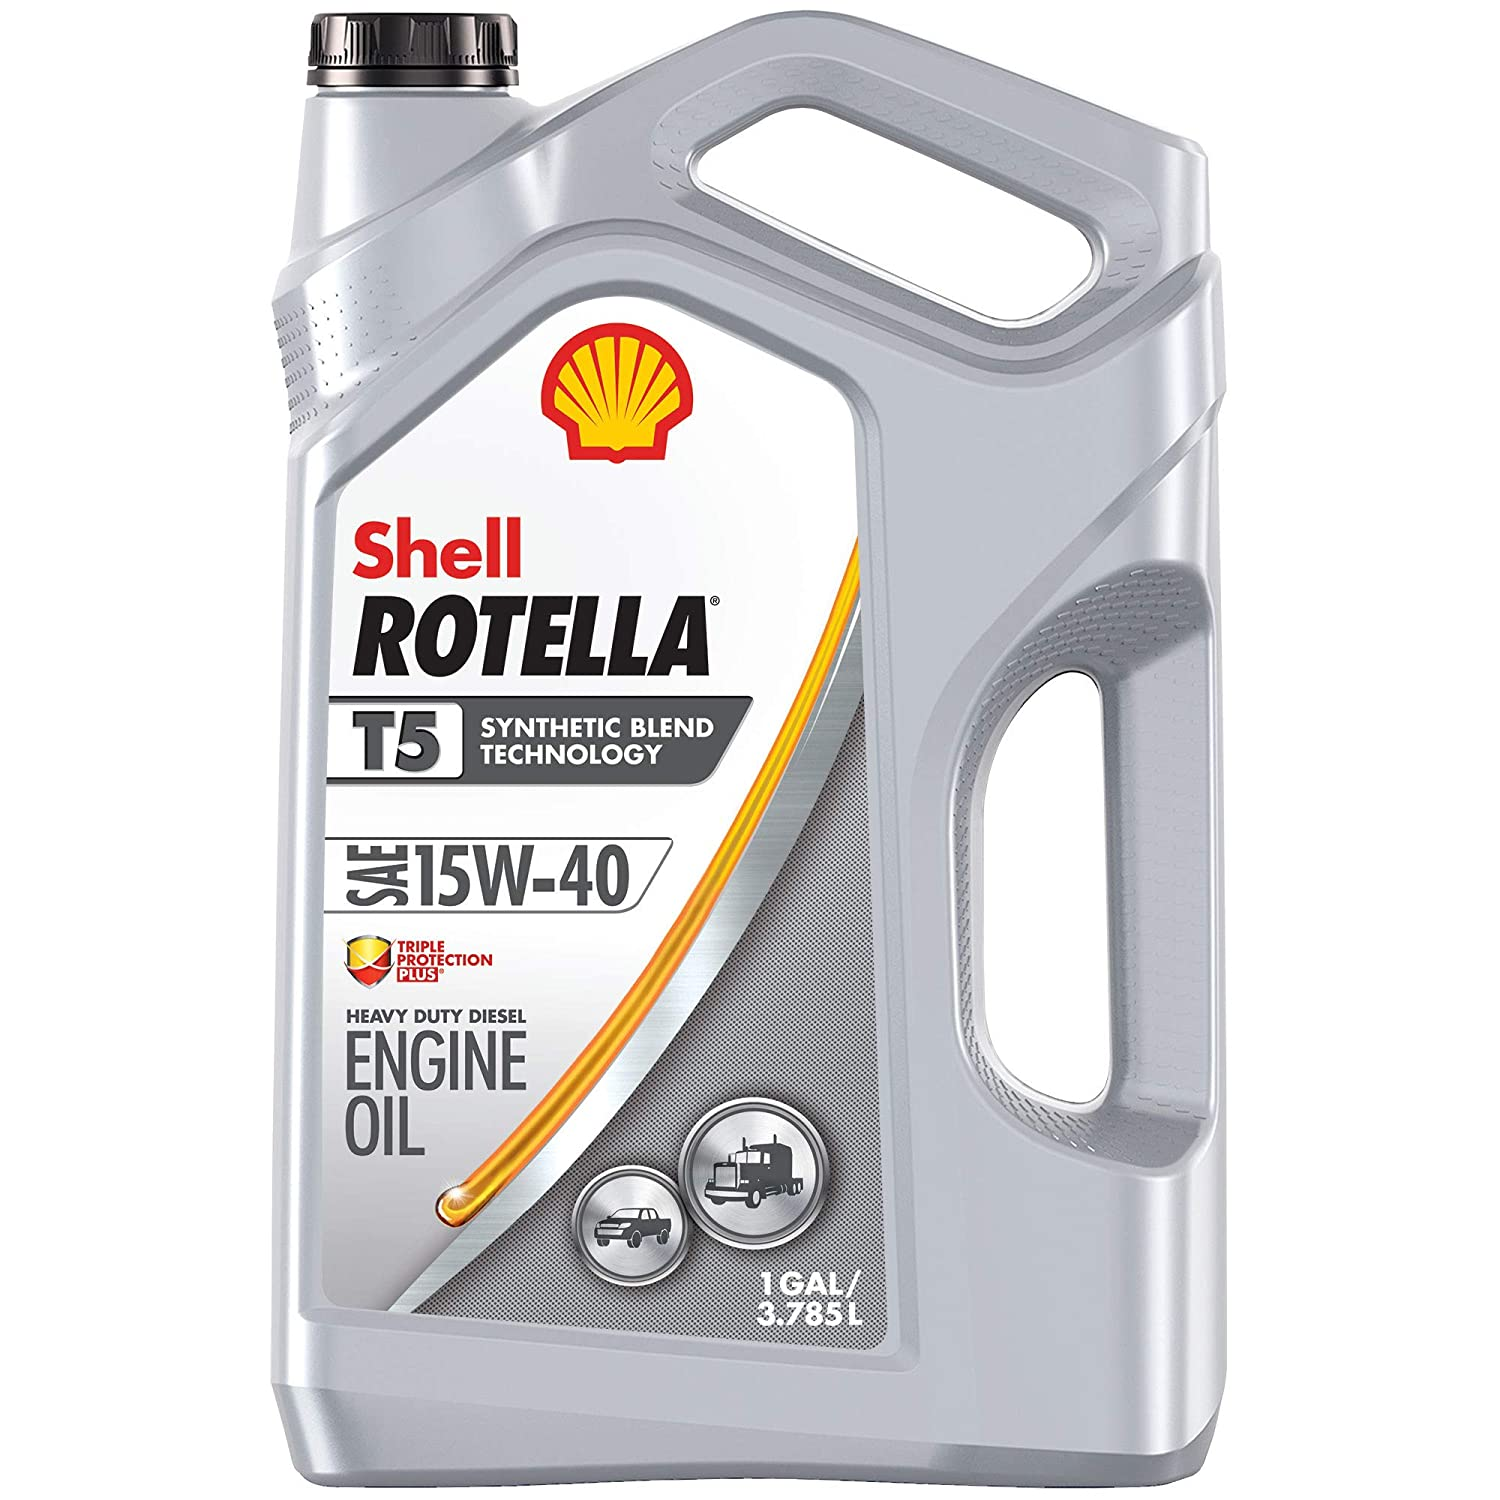 15w40 Diesel Oil >> Shell Rotella T5 Synthetic Blend 15w 40 Diesel Engine Oil 1 Gallon Single Pack